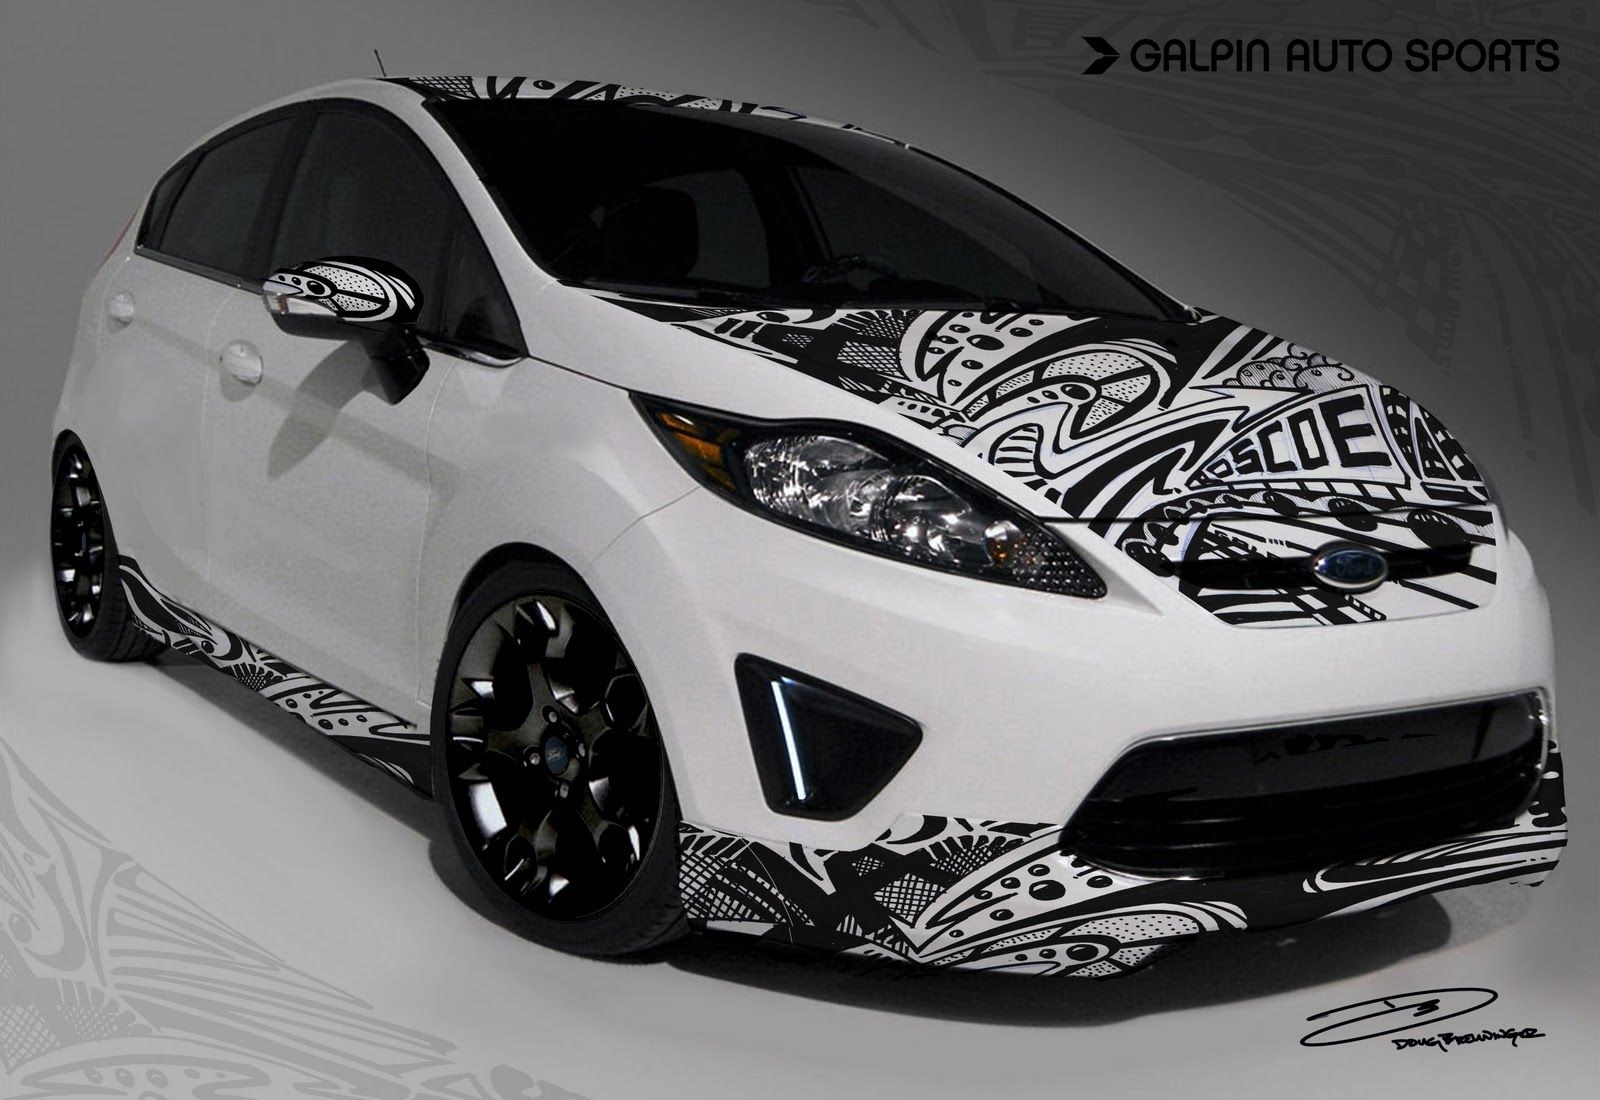 Cool Vinyl Wrap Car Black Honda Car Graphics